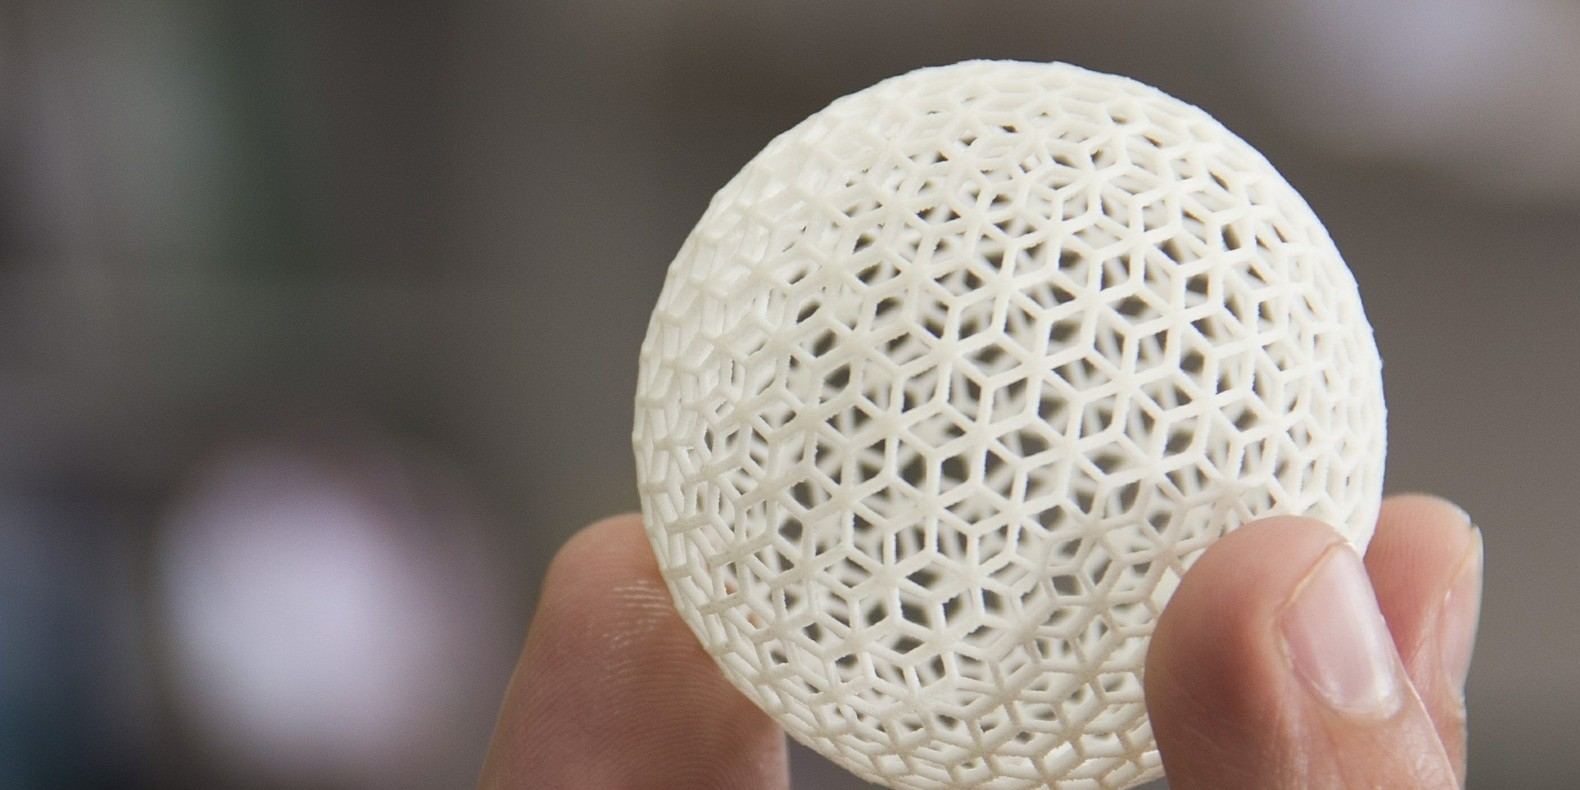 Is 3D Printing A Good Idea For Making Fitness Equipment?